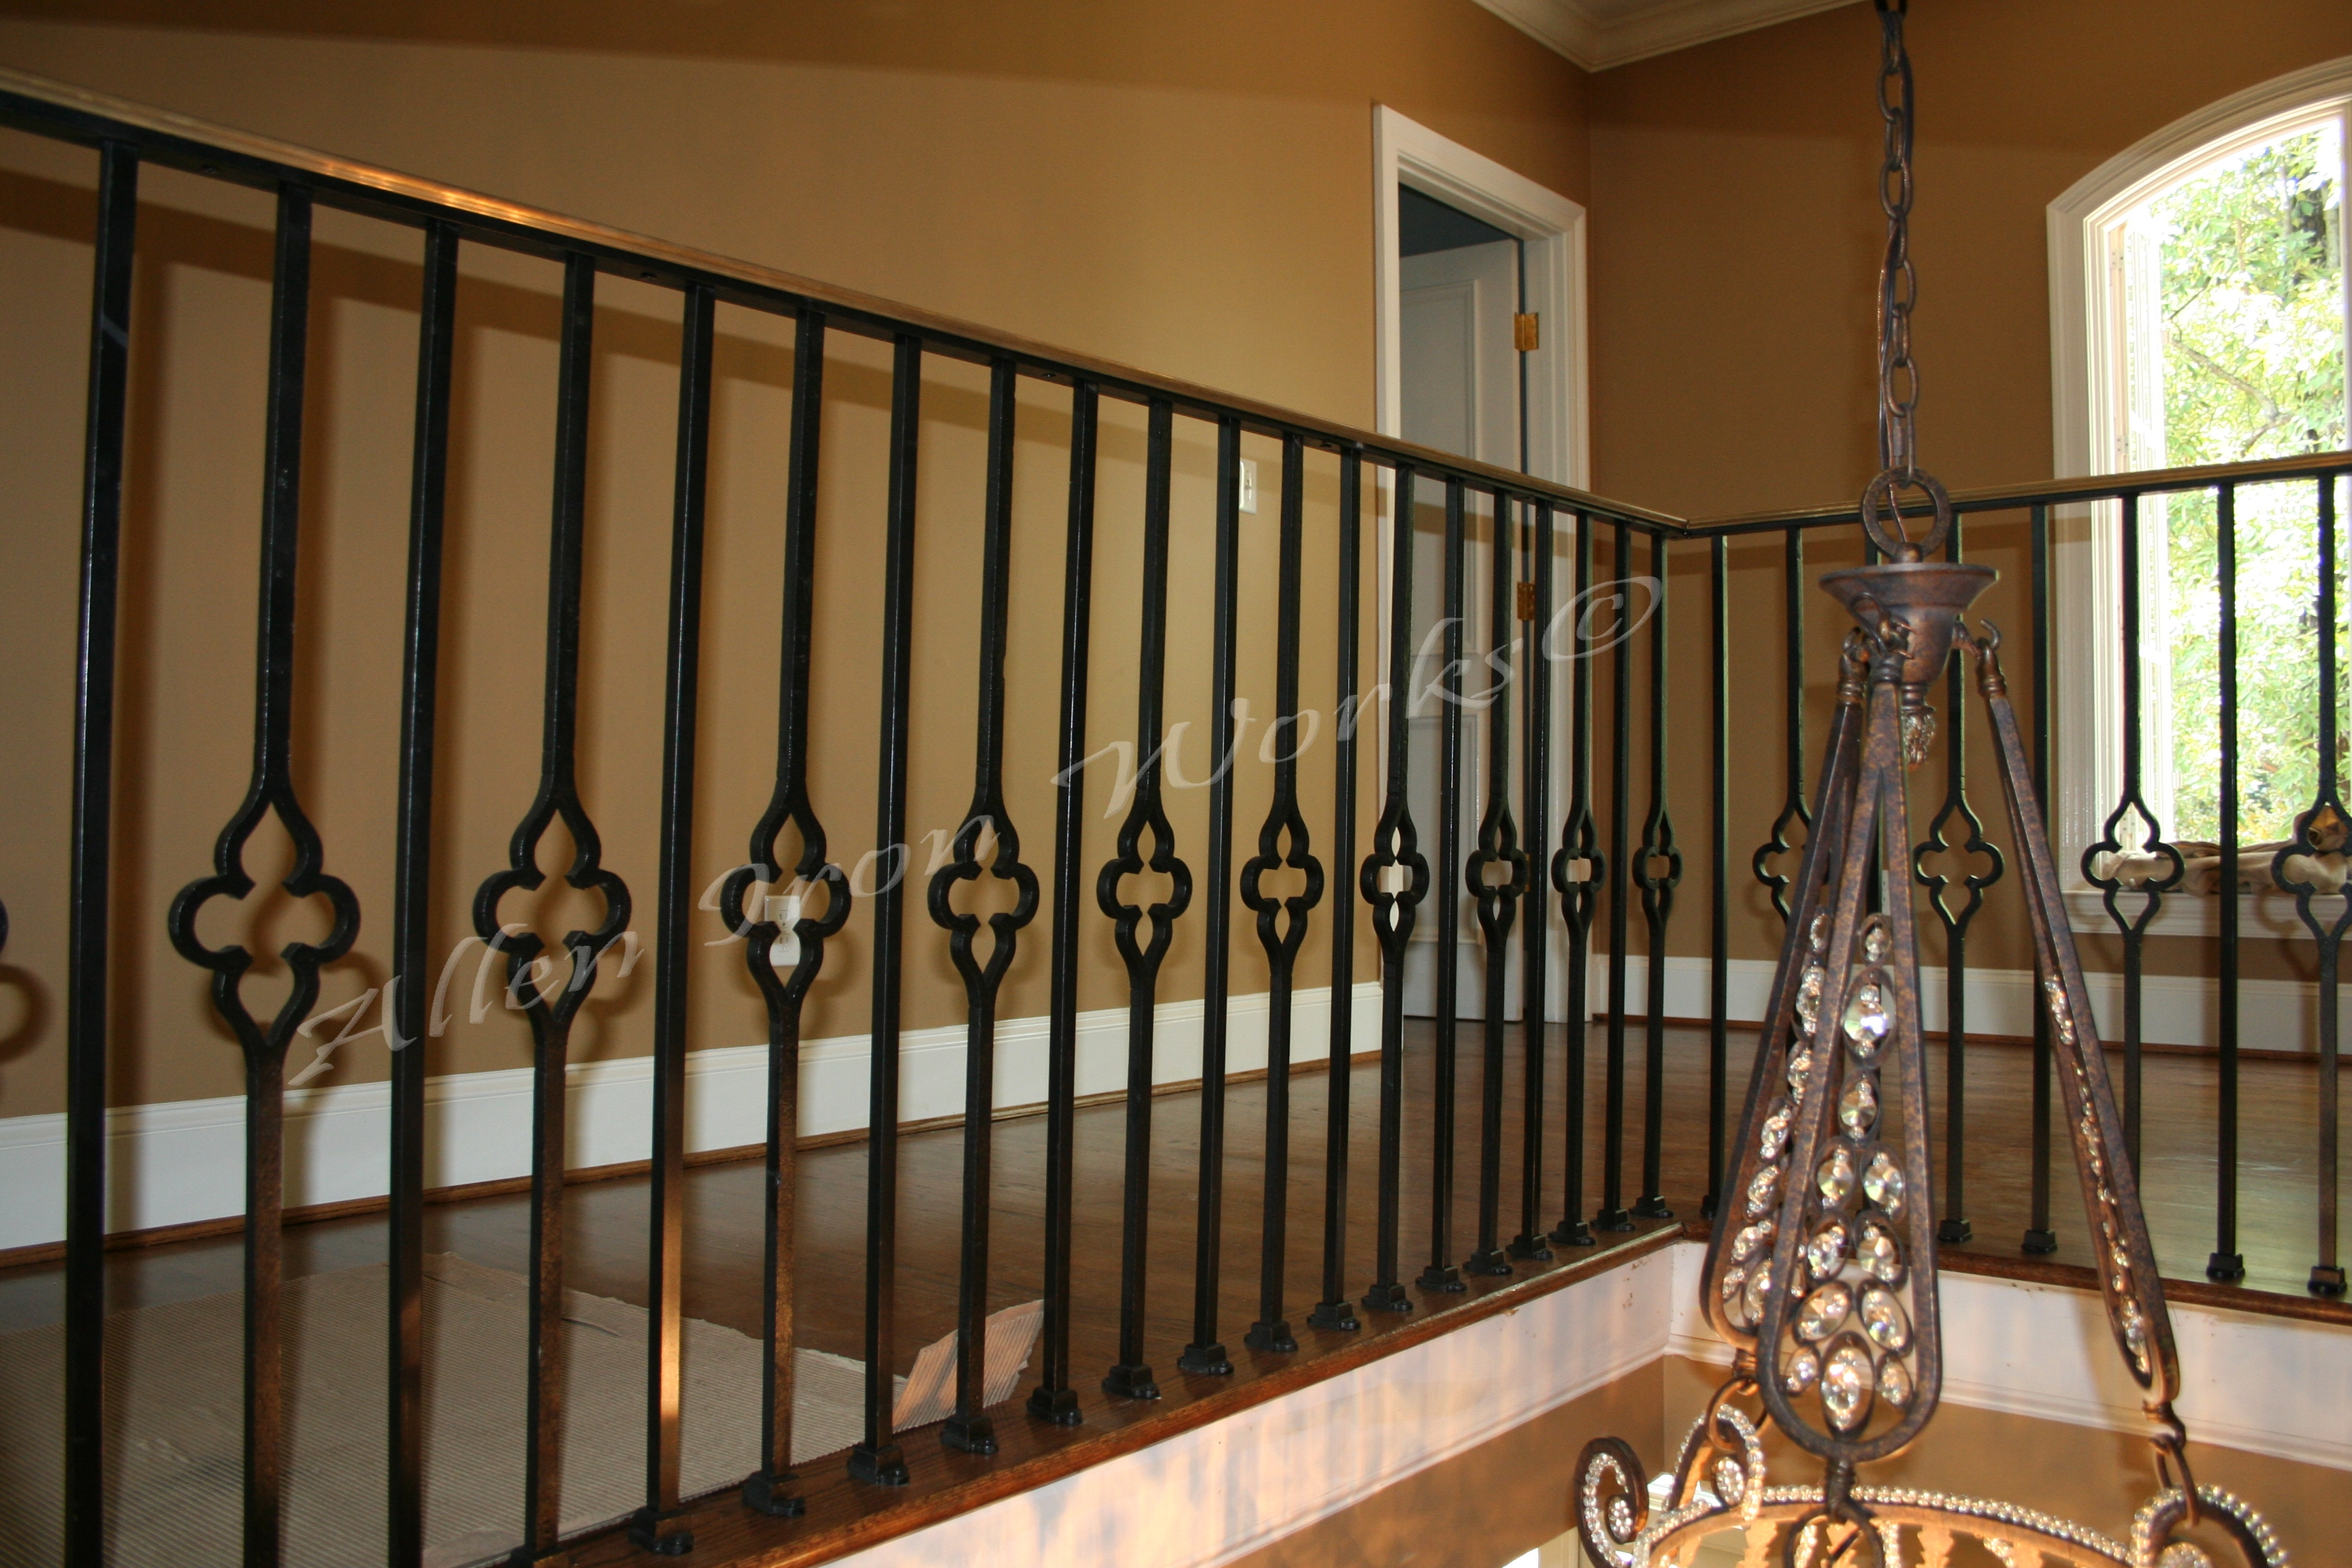 quatrefoil-interior-iron-railings-birmingham-alabama